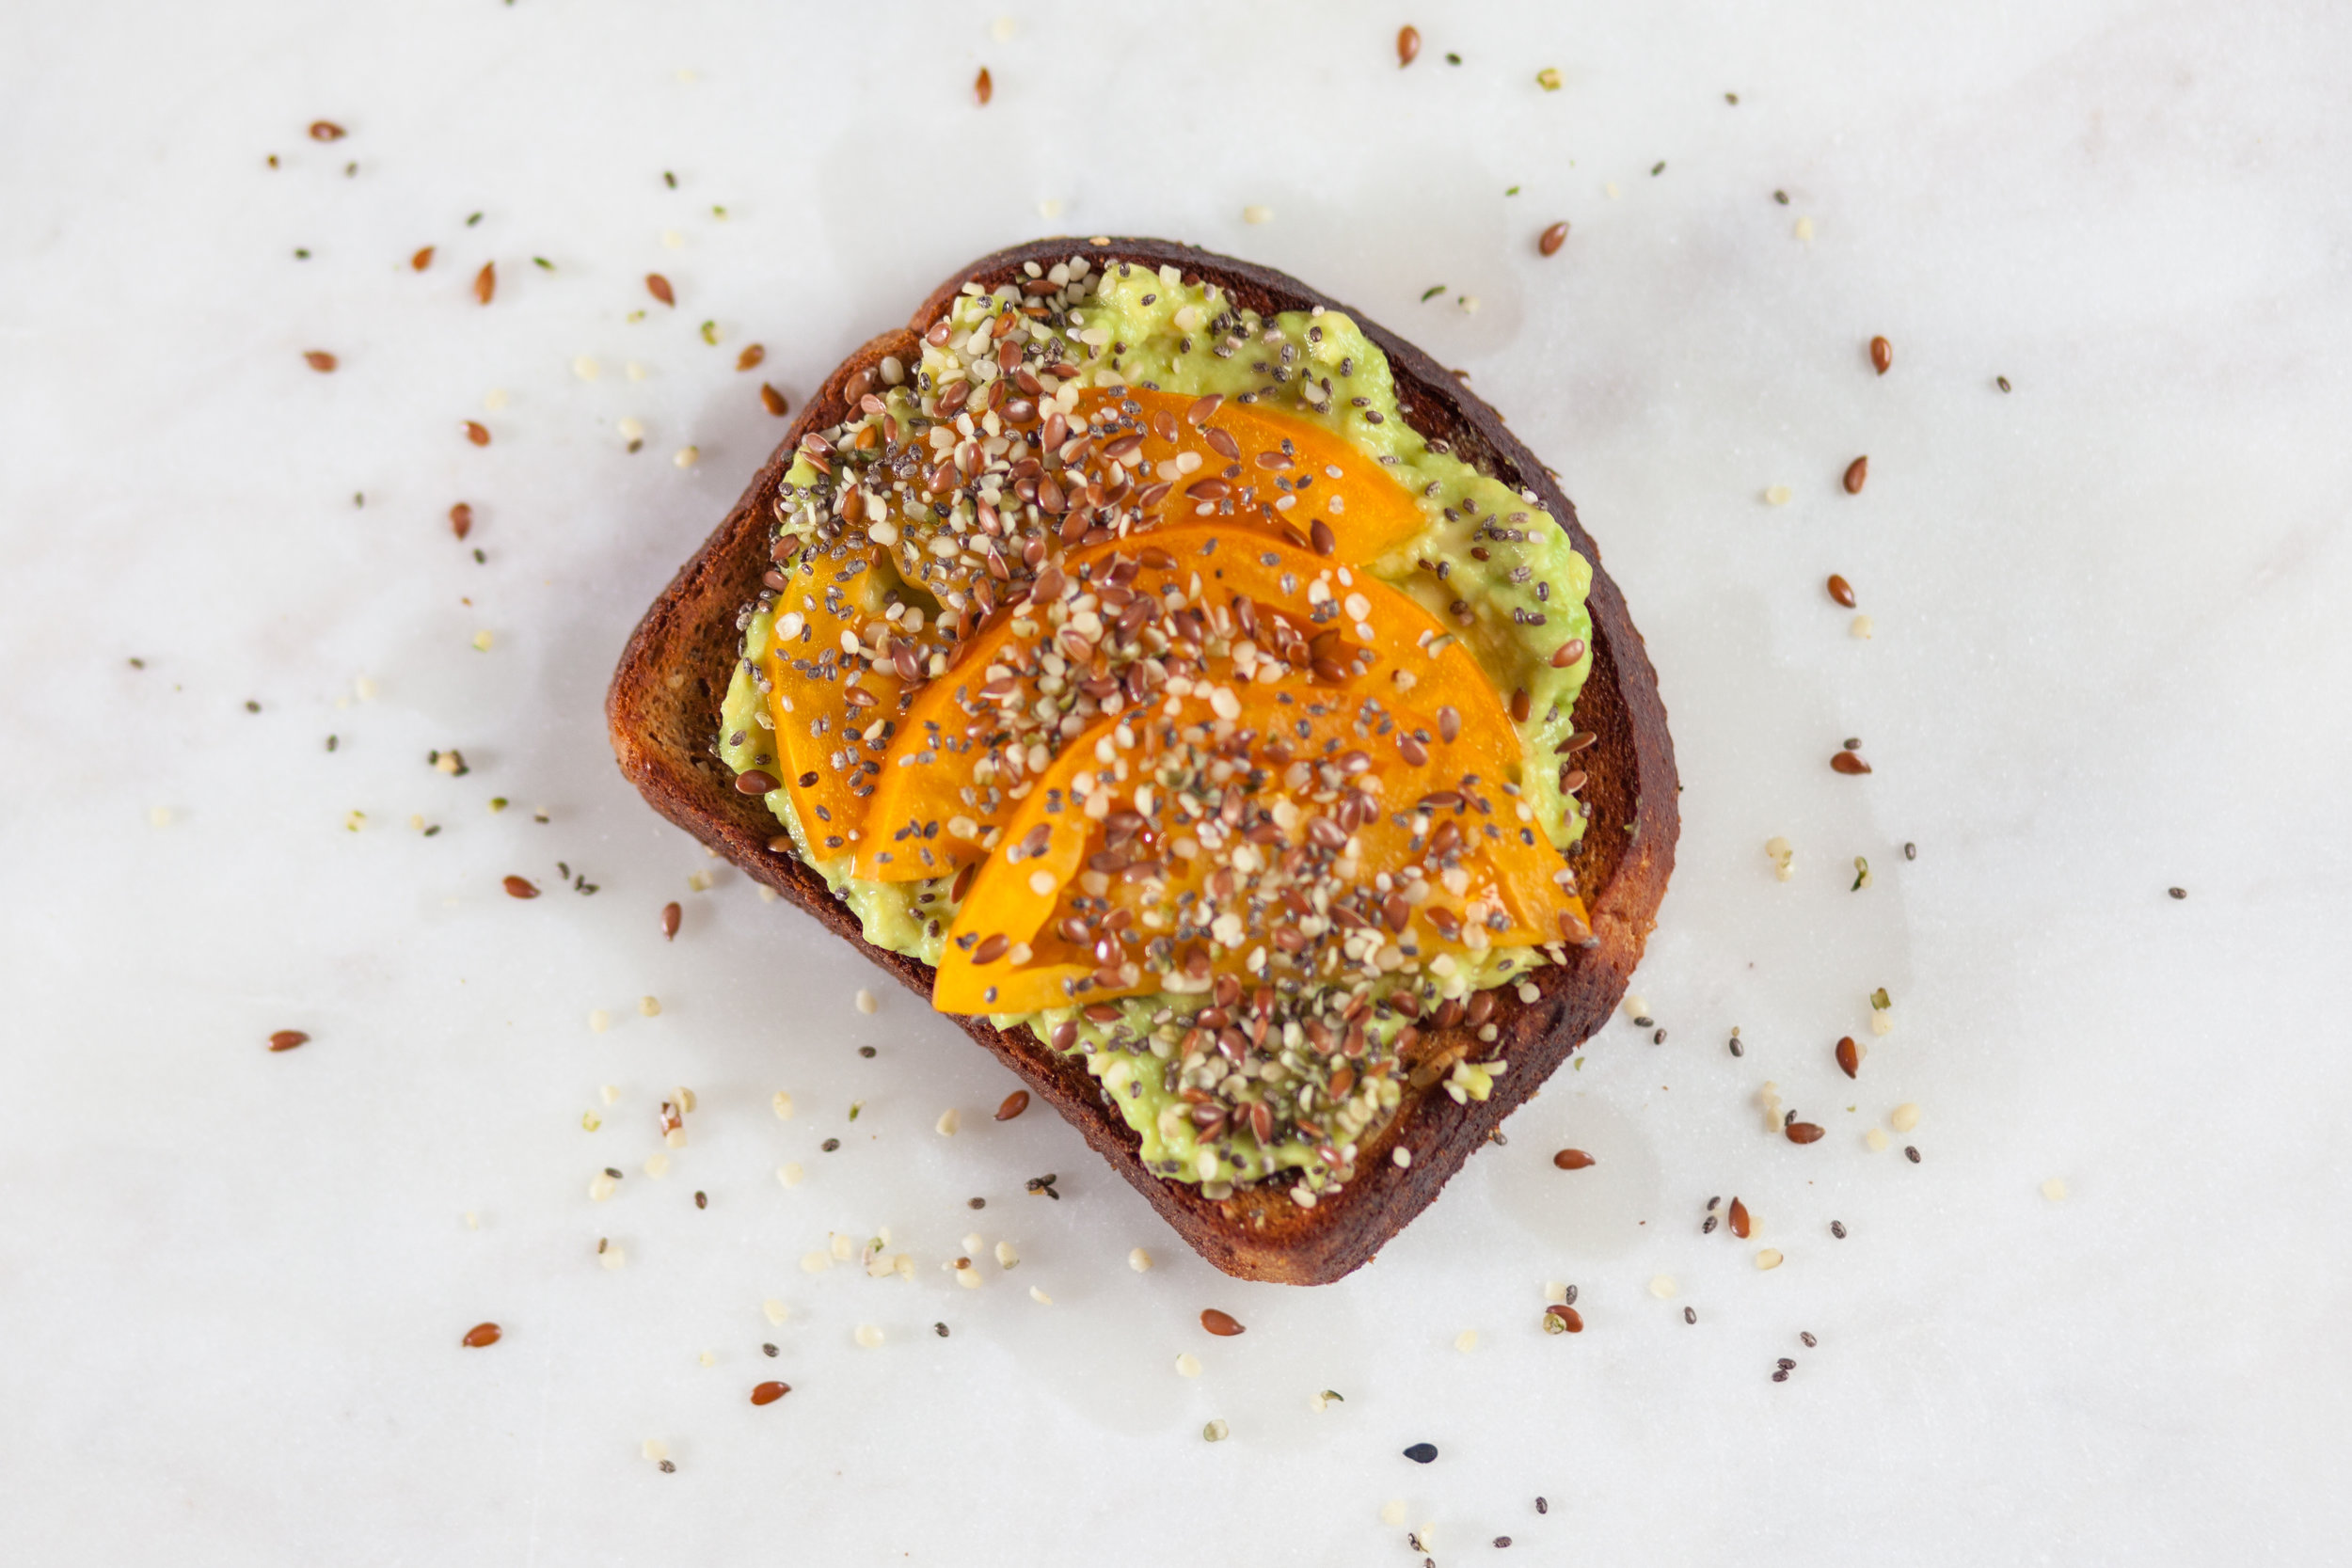 Toast topped with avocado paste and heirloom tomatoes